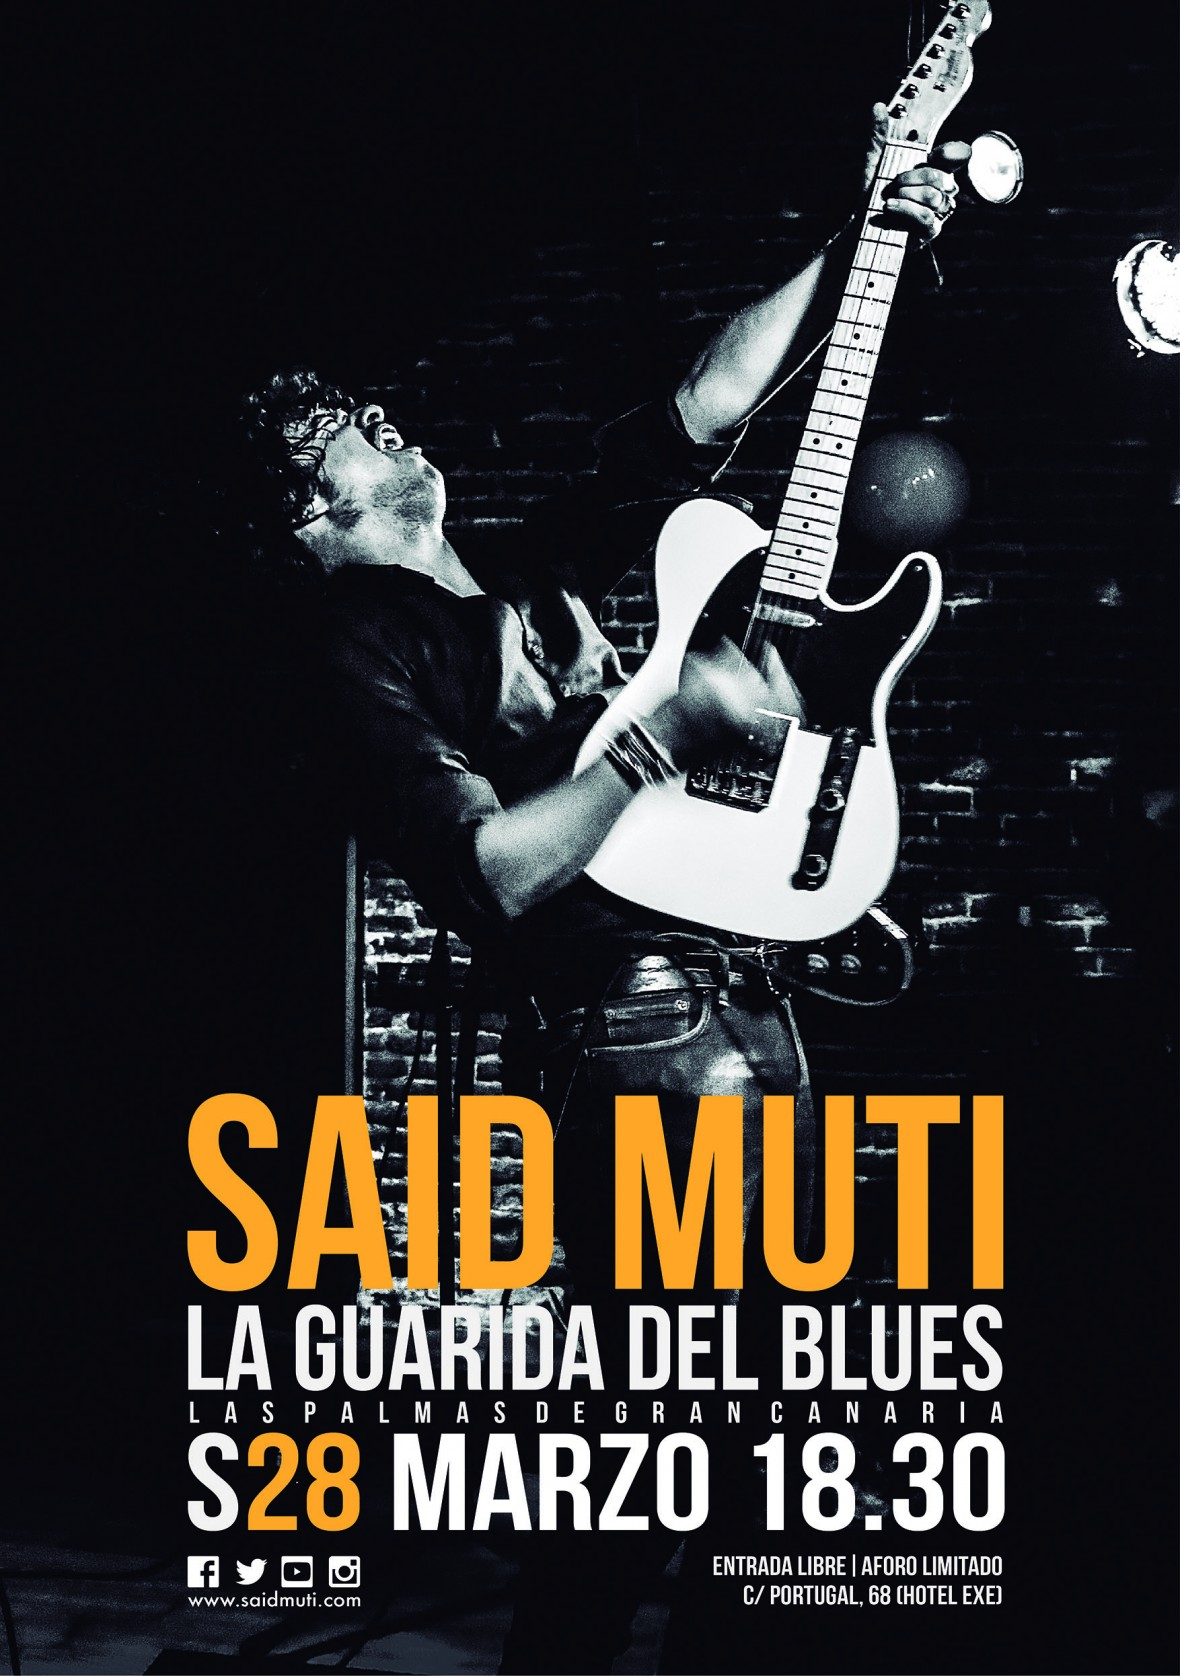 Said Muti La Guarida del Blues